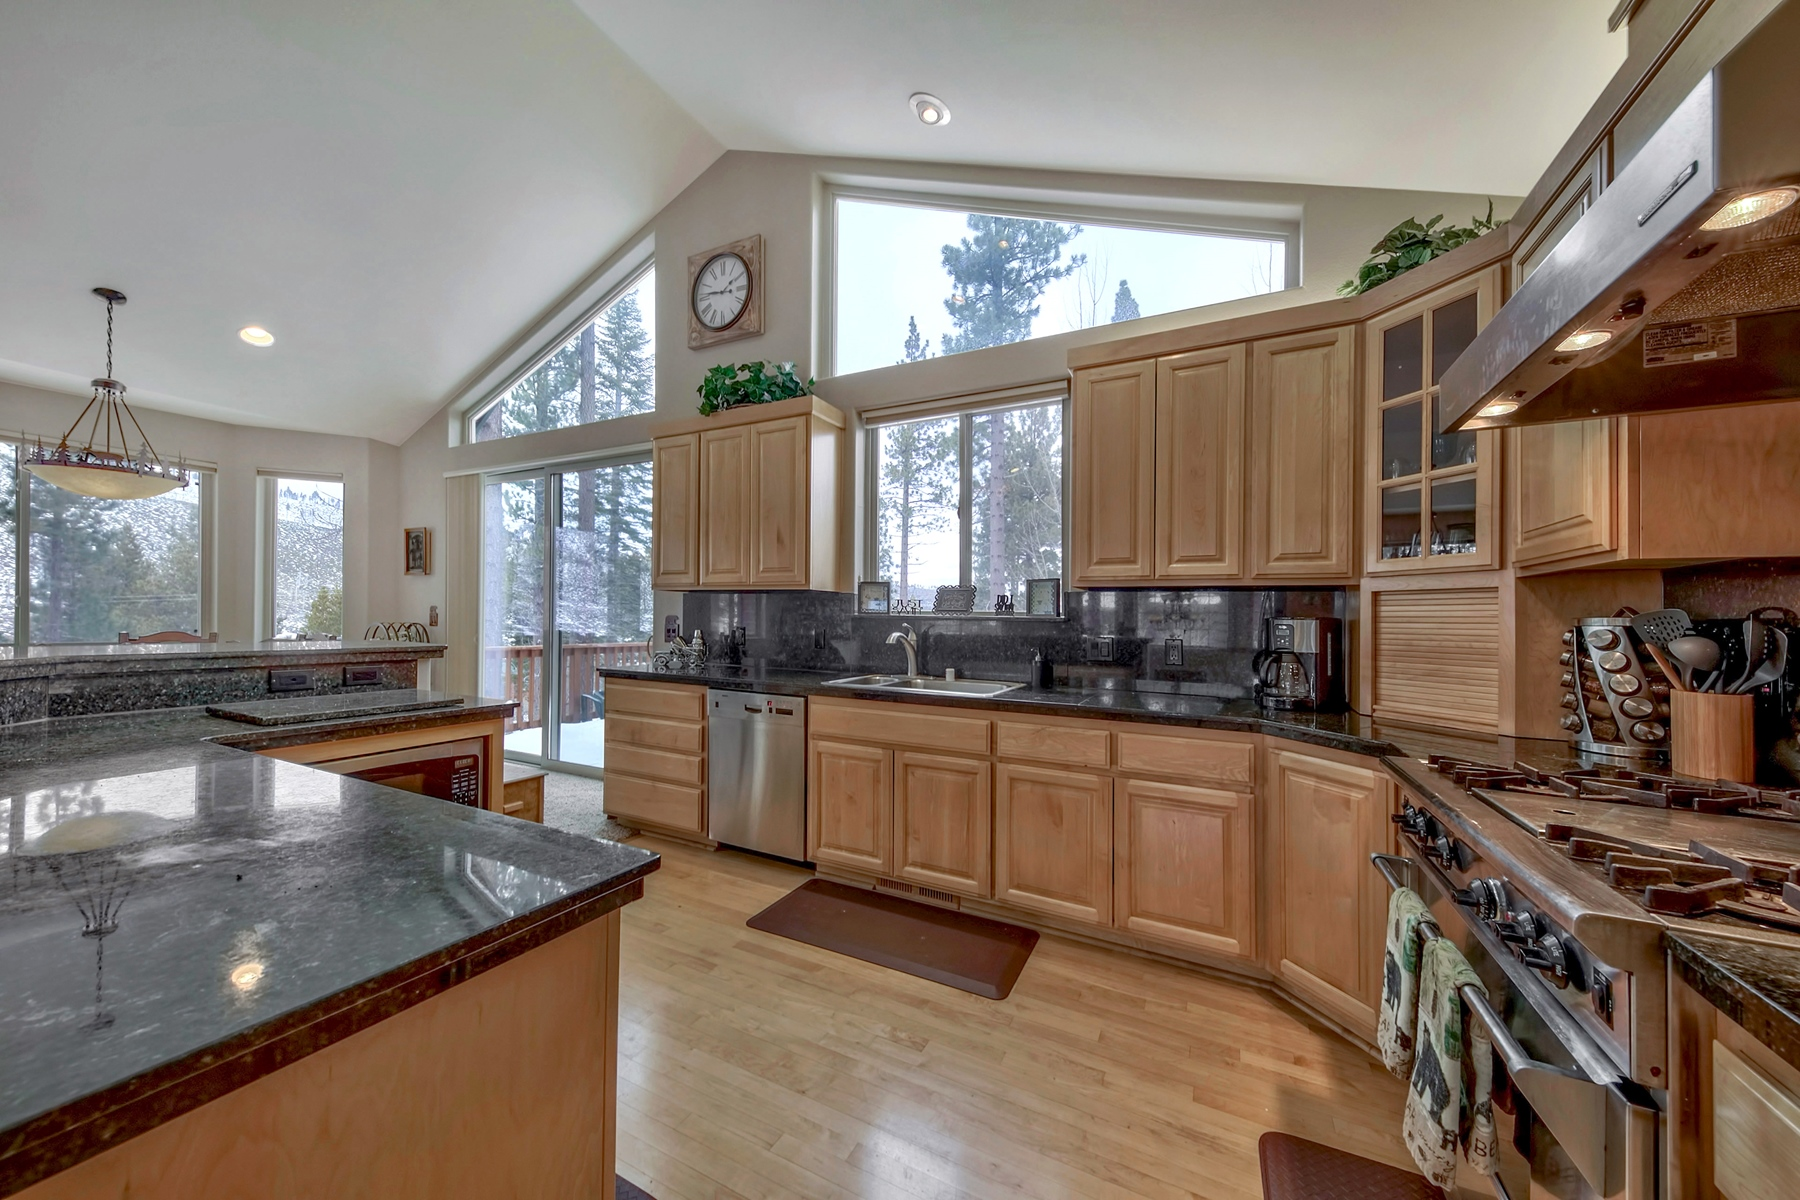 Additional photo for property listing at 1395 Mount Rainier, South Lake Tahoe, CA 96150 1395 Mount Rainier Drive South Lake Tahoe, California 96150 United States